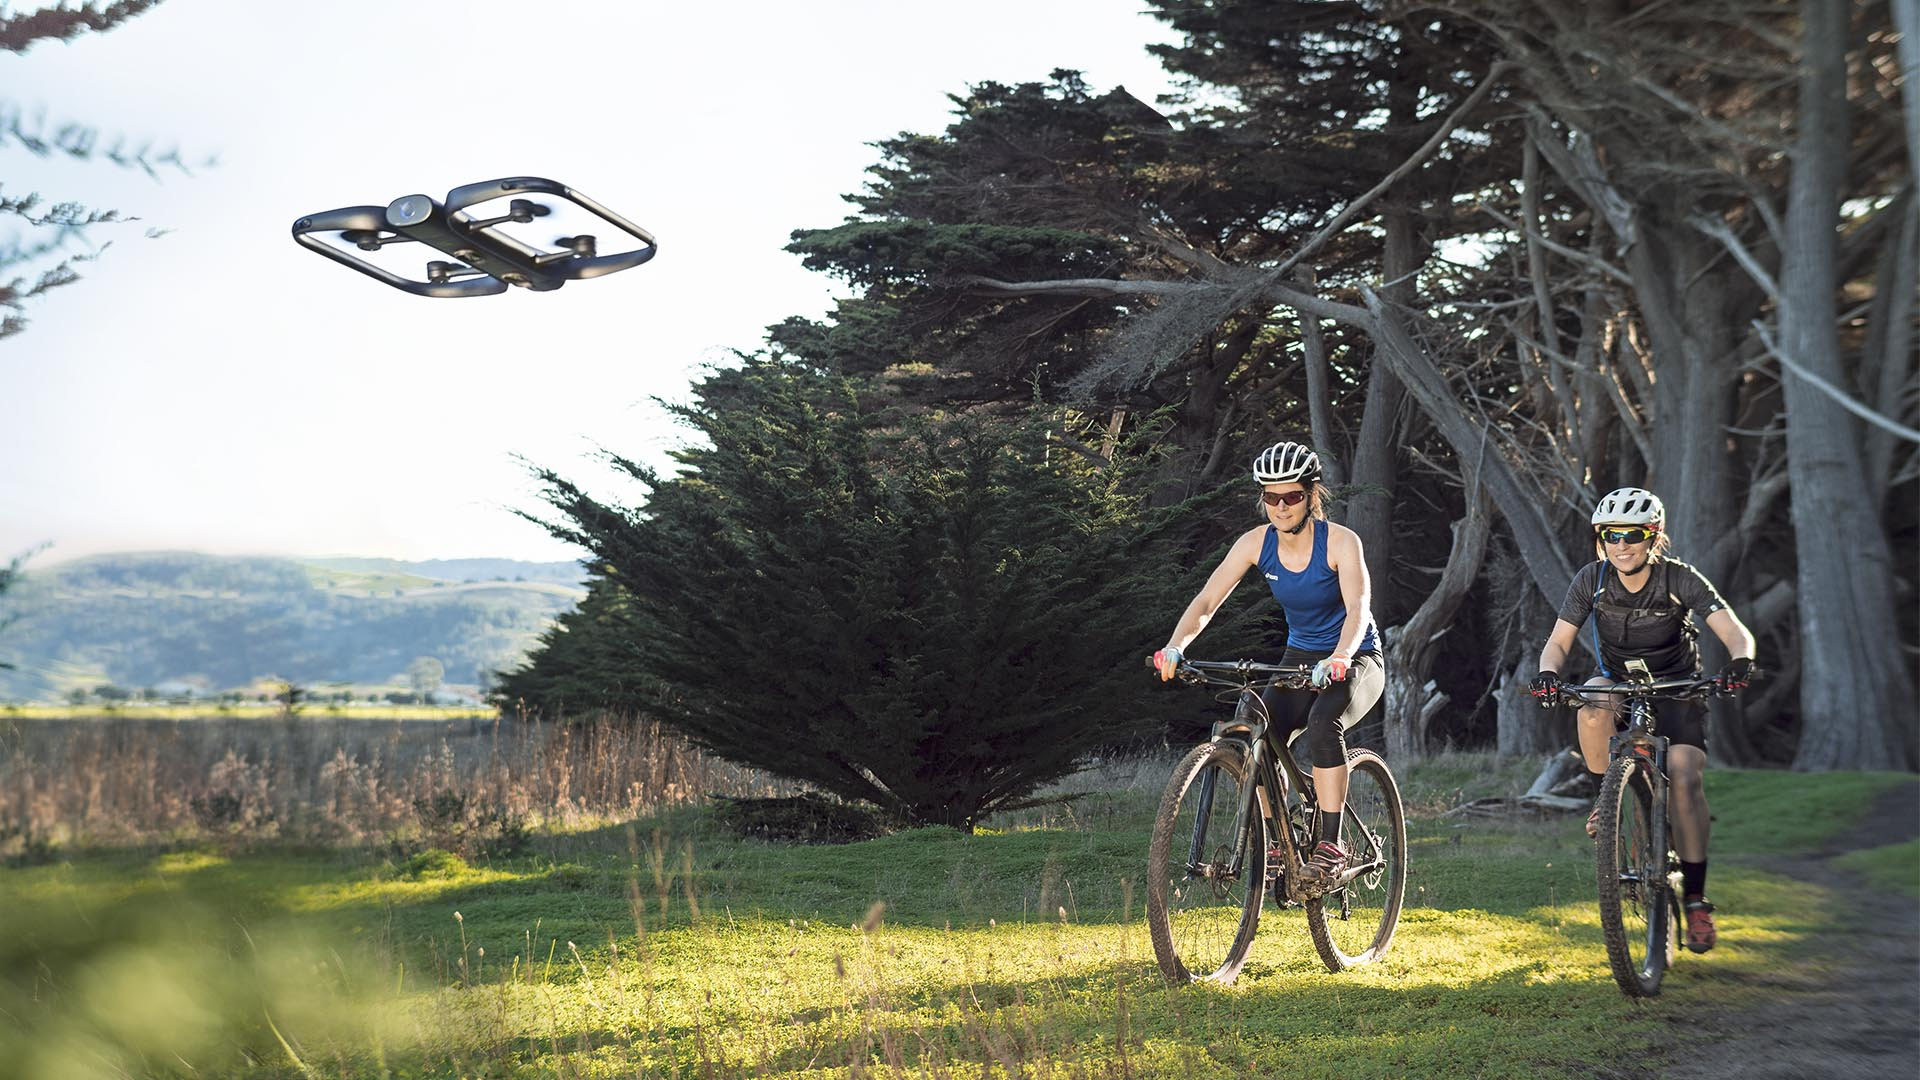 The new Skydio R1 wants to do with drones what Tesla did for cars